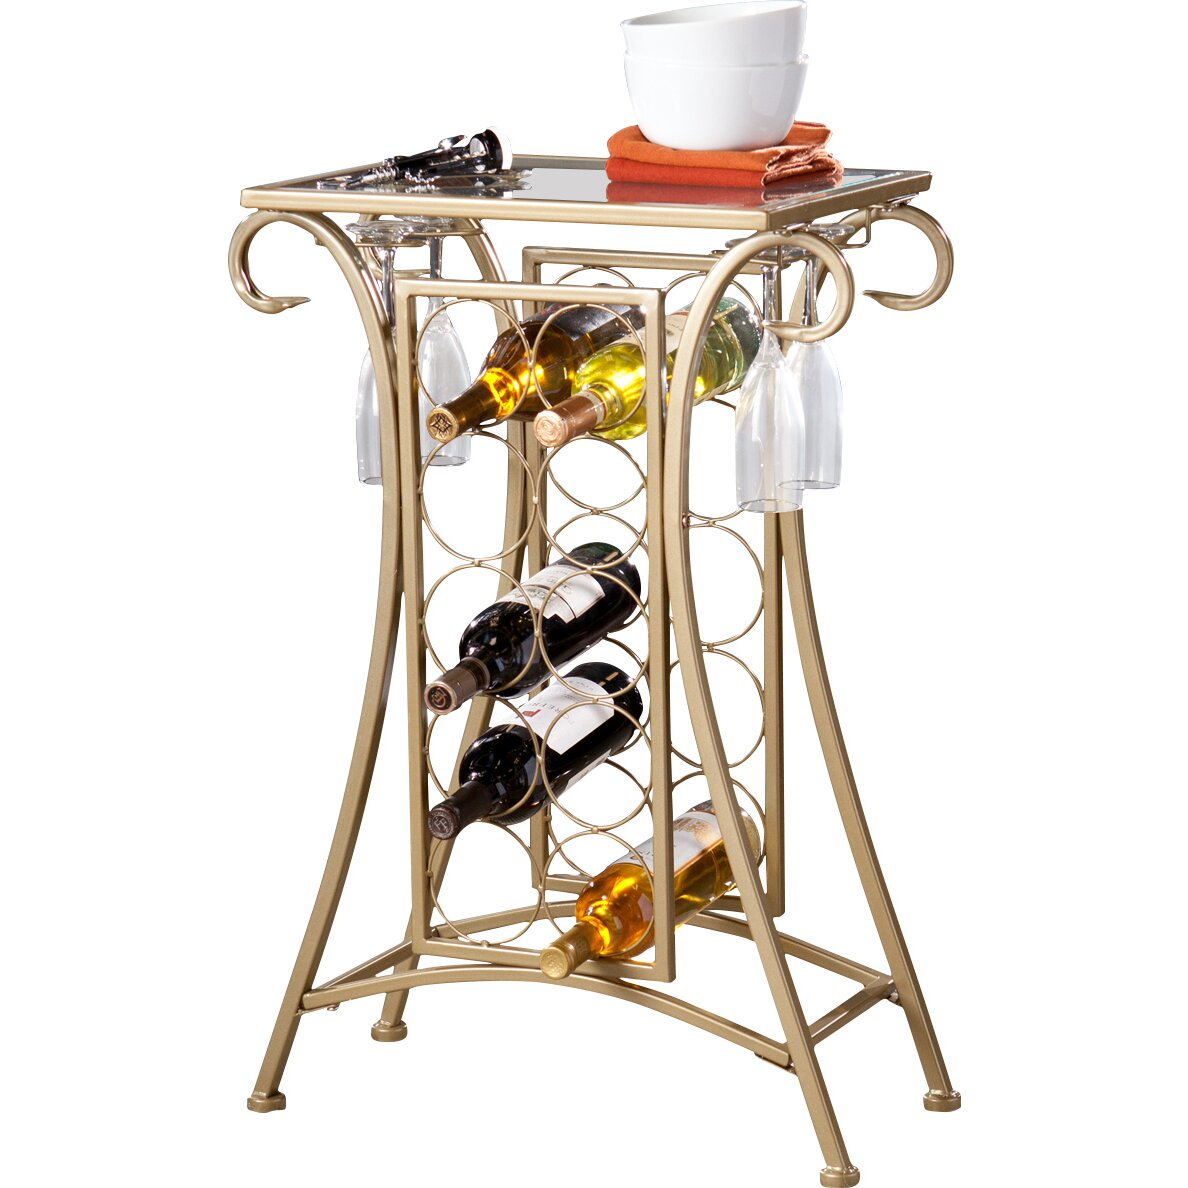 Alcott hill herbert 10 bottle floor wine rack reviews for Floor wine rack